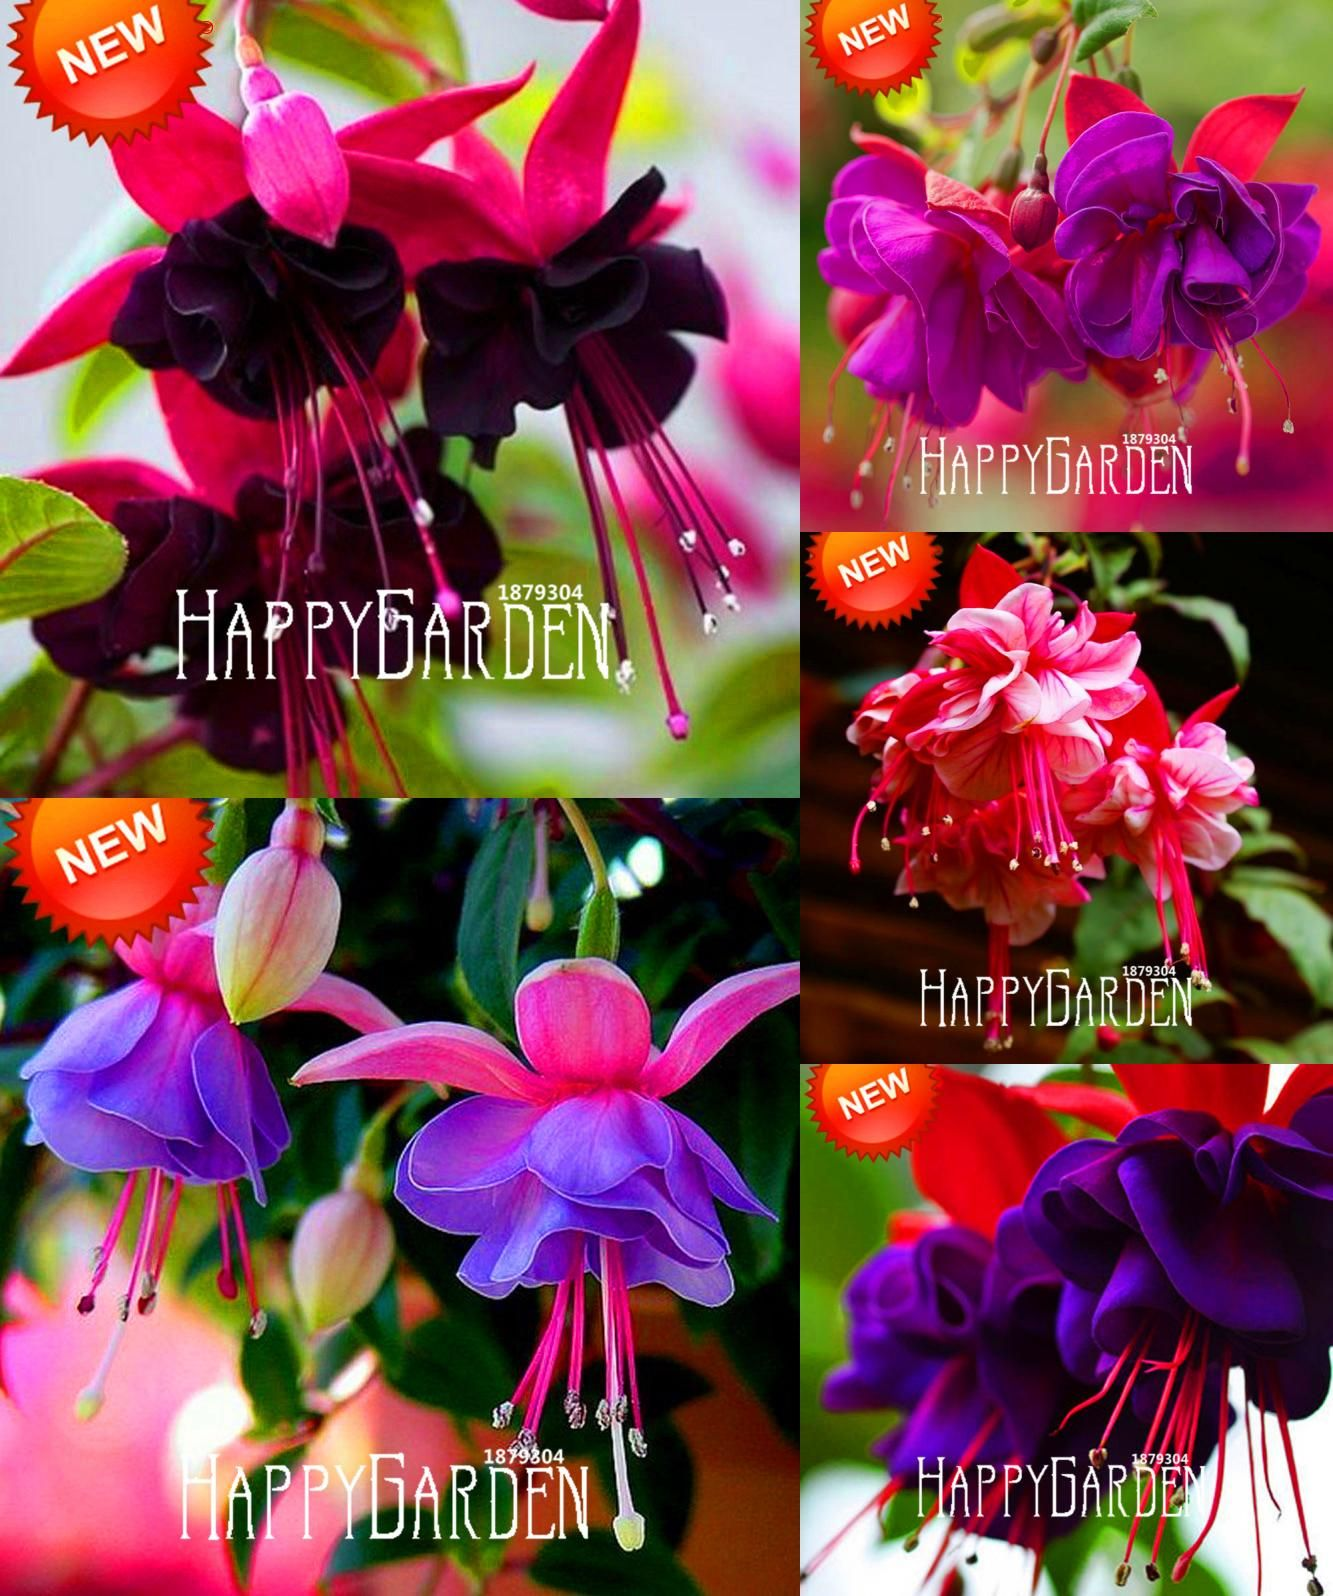 Visit To Buy Hot Sale Purple Double Petals Fuchsia Seeds Potted Flower Seeds Potted Plants Hanging Fuchsia Flowers Fuchsia Seeds Fuchsia Flowers Flower Seeds